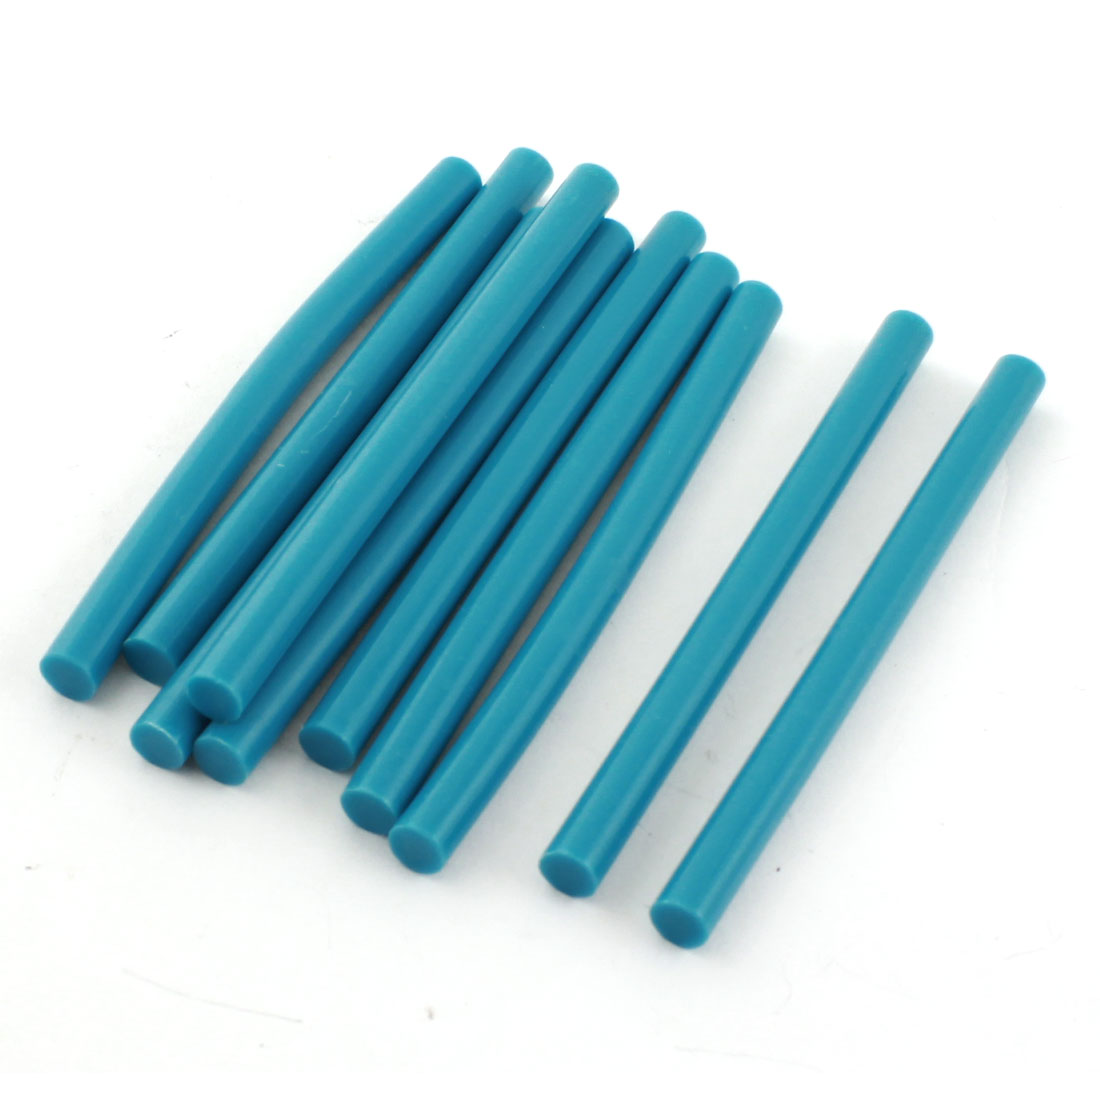 10 Pcs Turquoise Hot Melt Glue Gun Adhesive Sticks 7mm x 100mm